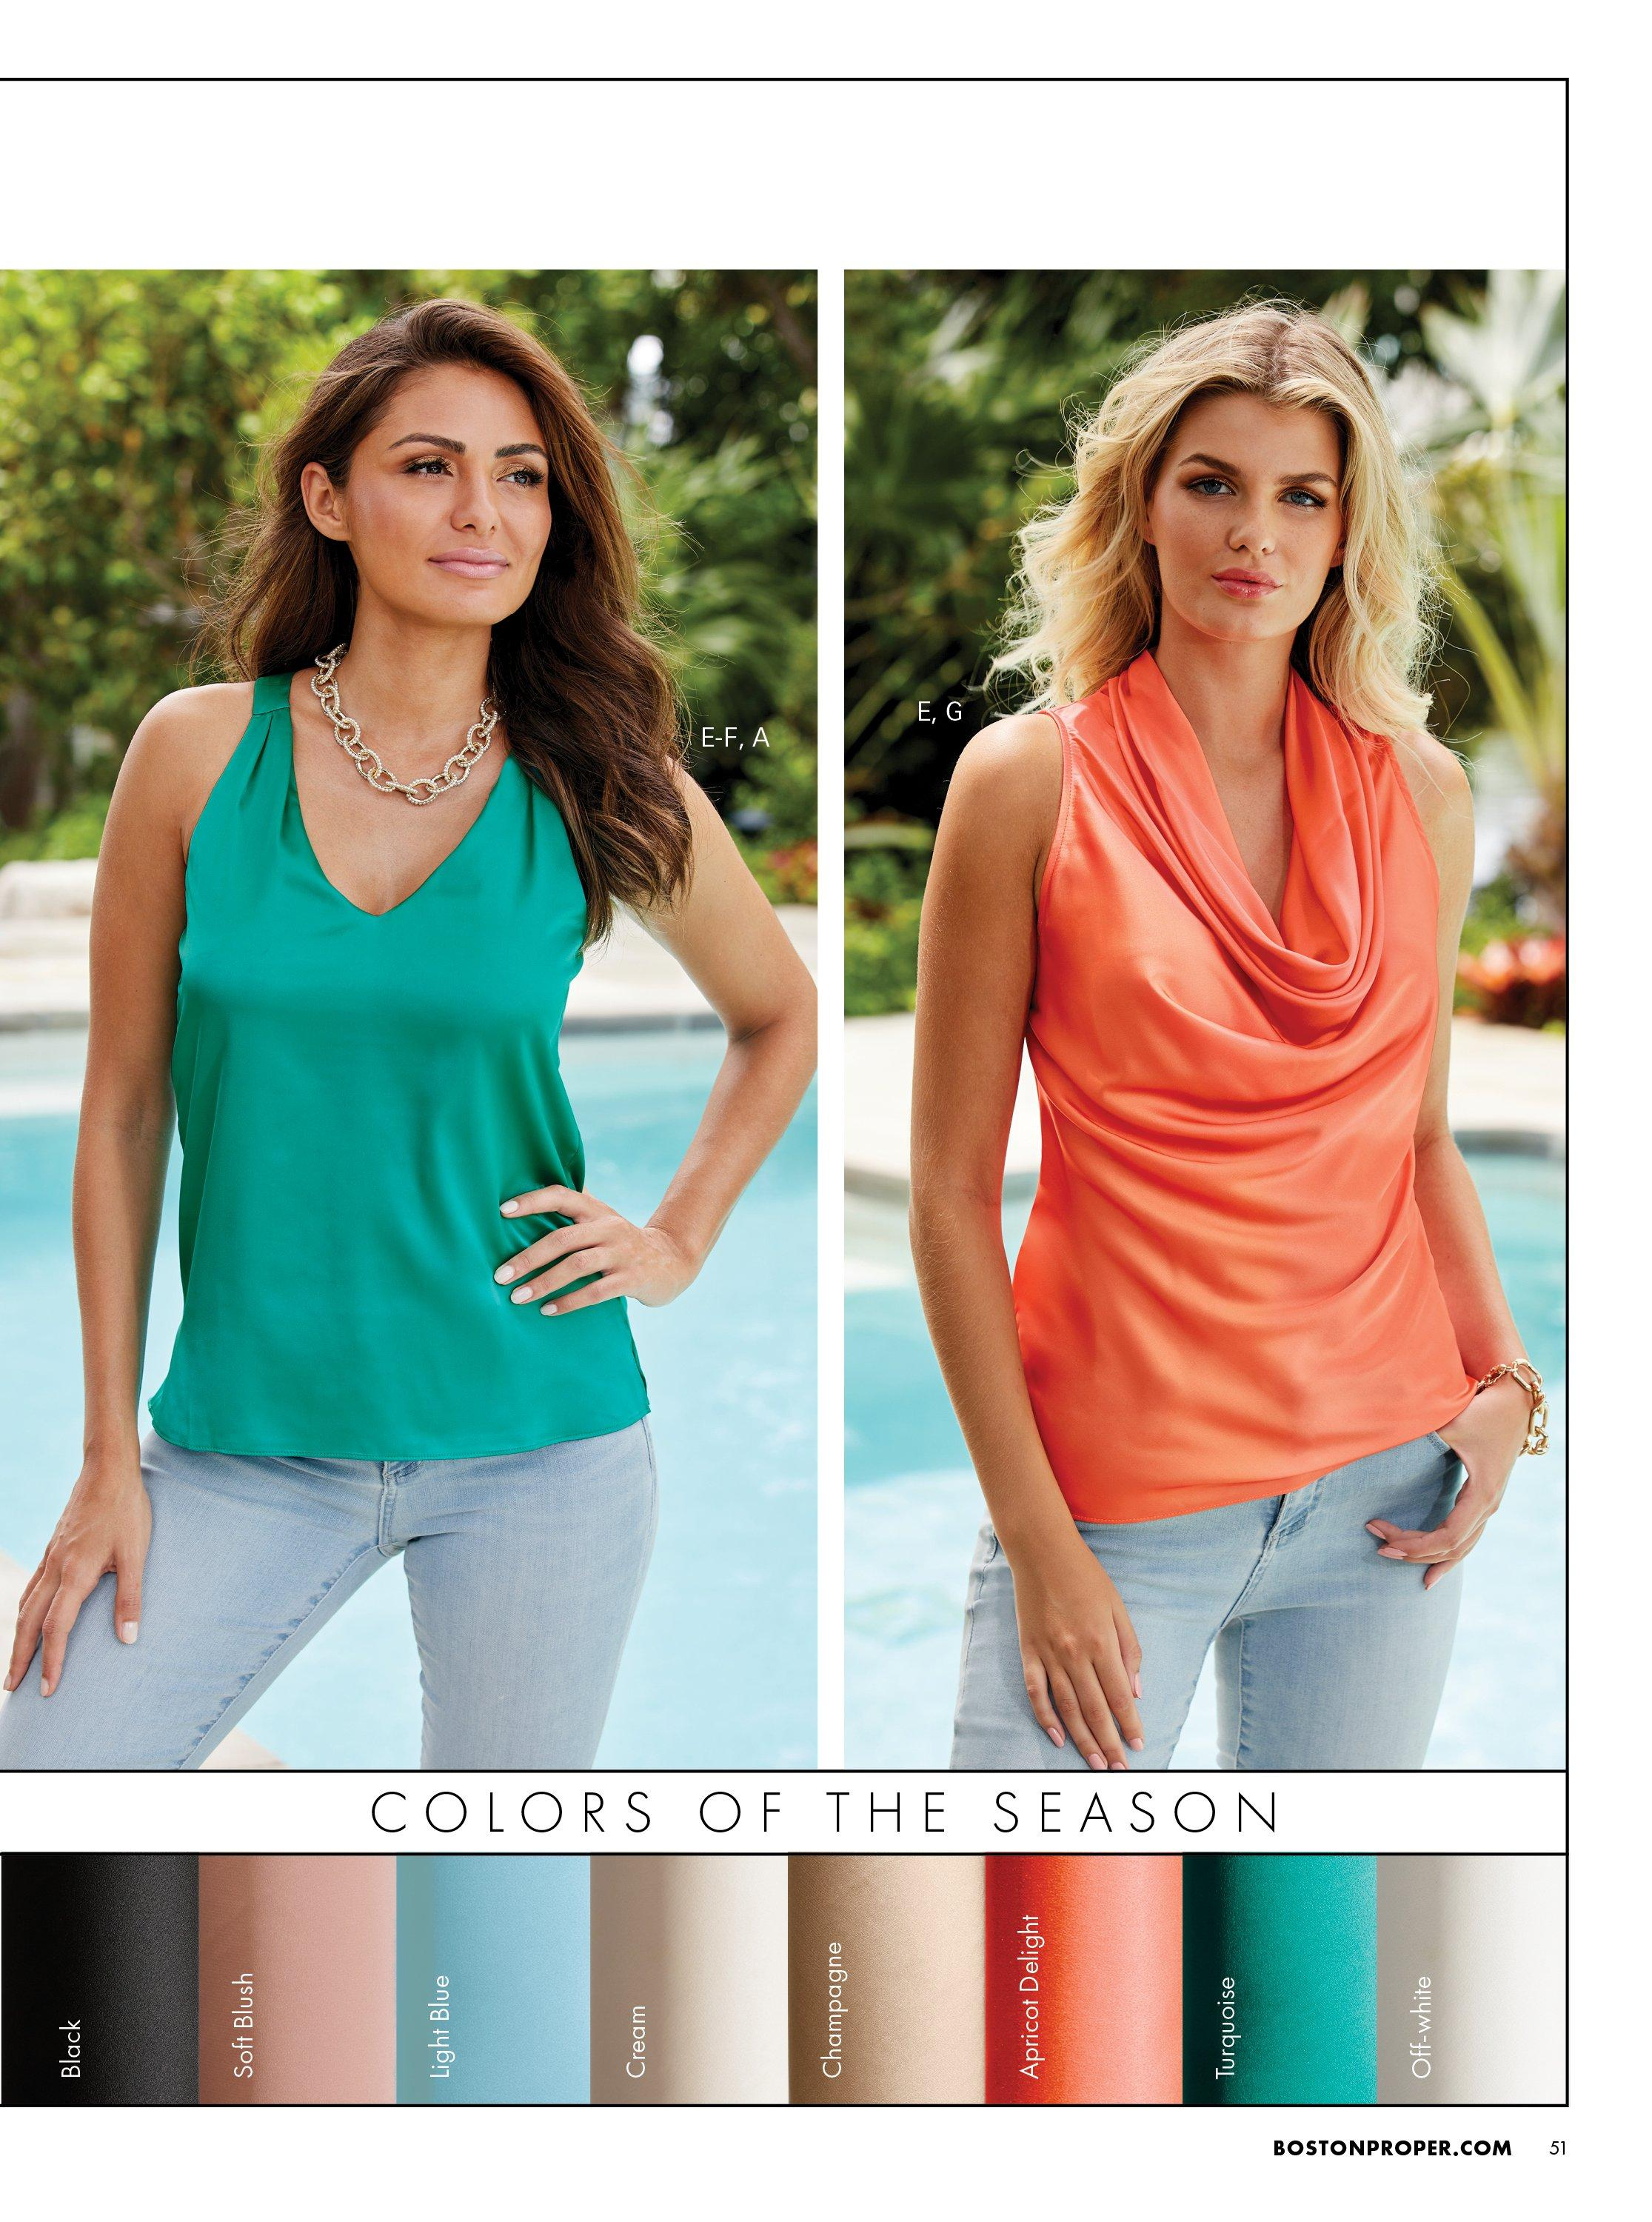 left model wearing a green v-neck charm tank top and light wash jeans. right model wearing an orange cowl neck sleeveless charm top and light wash jeans.